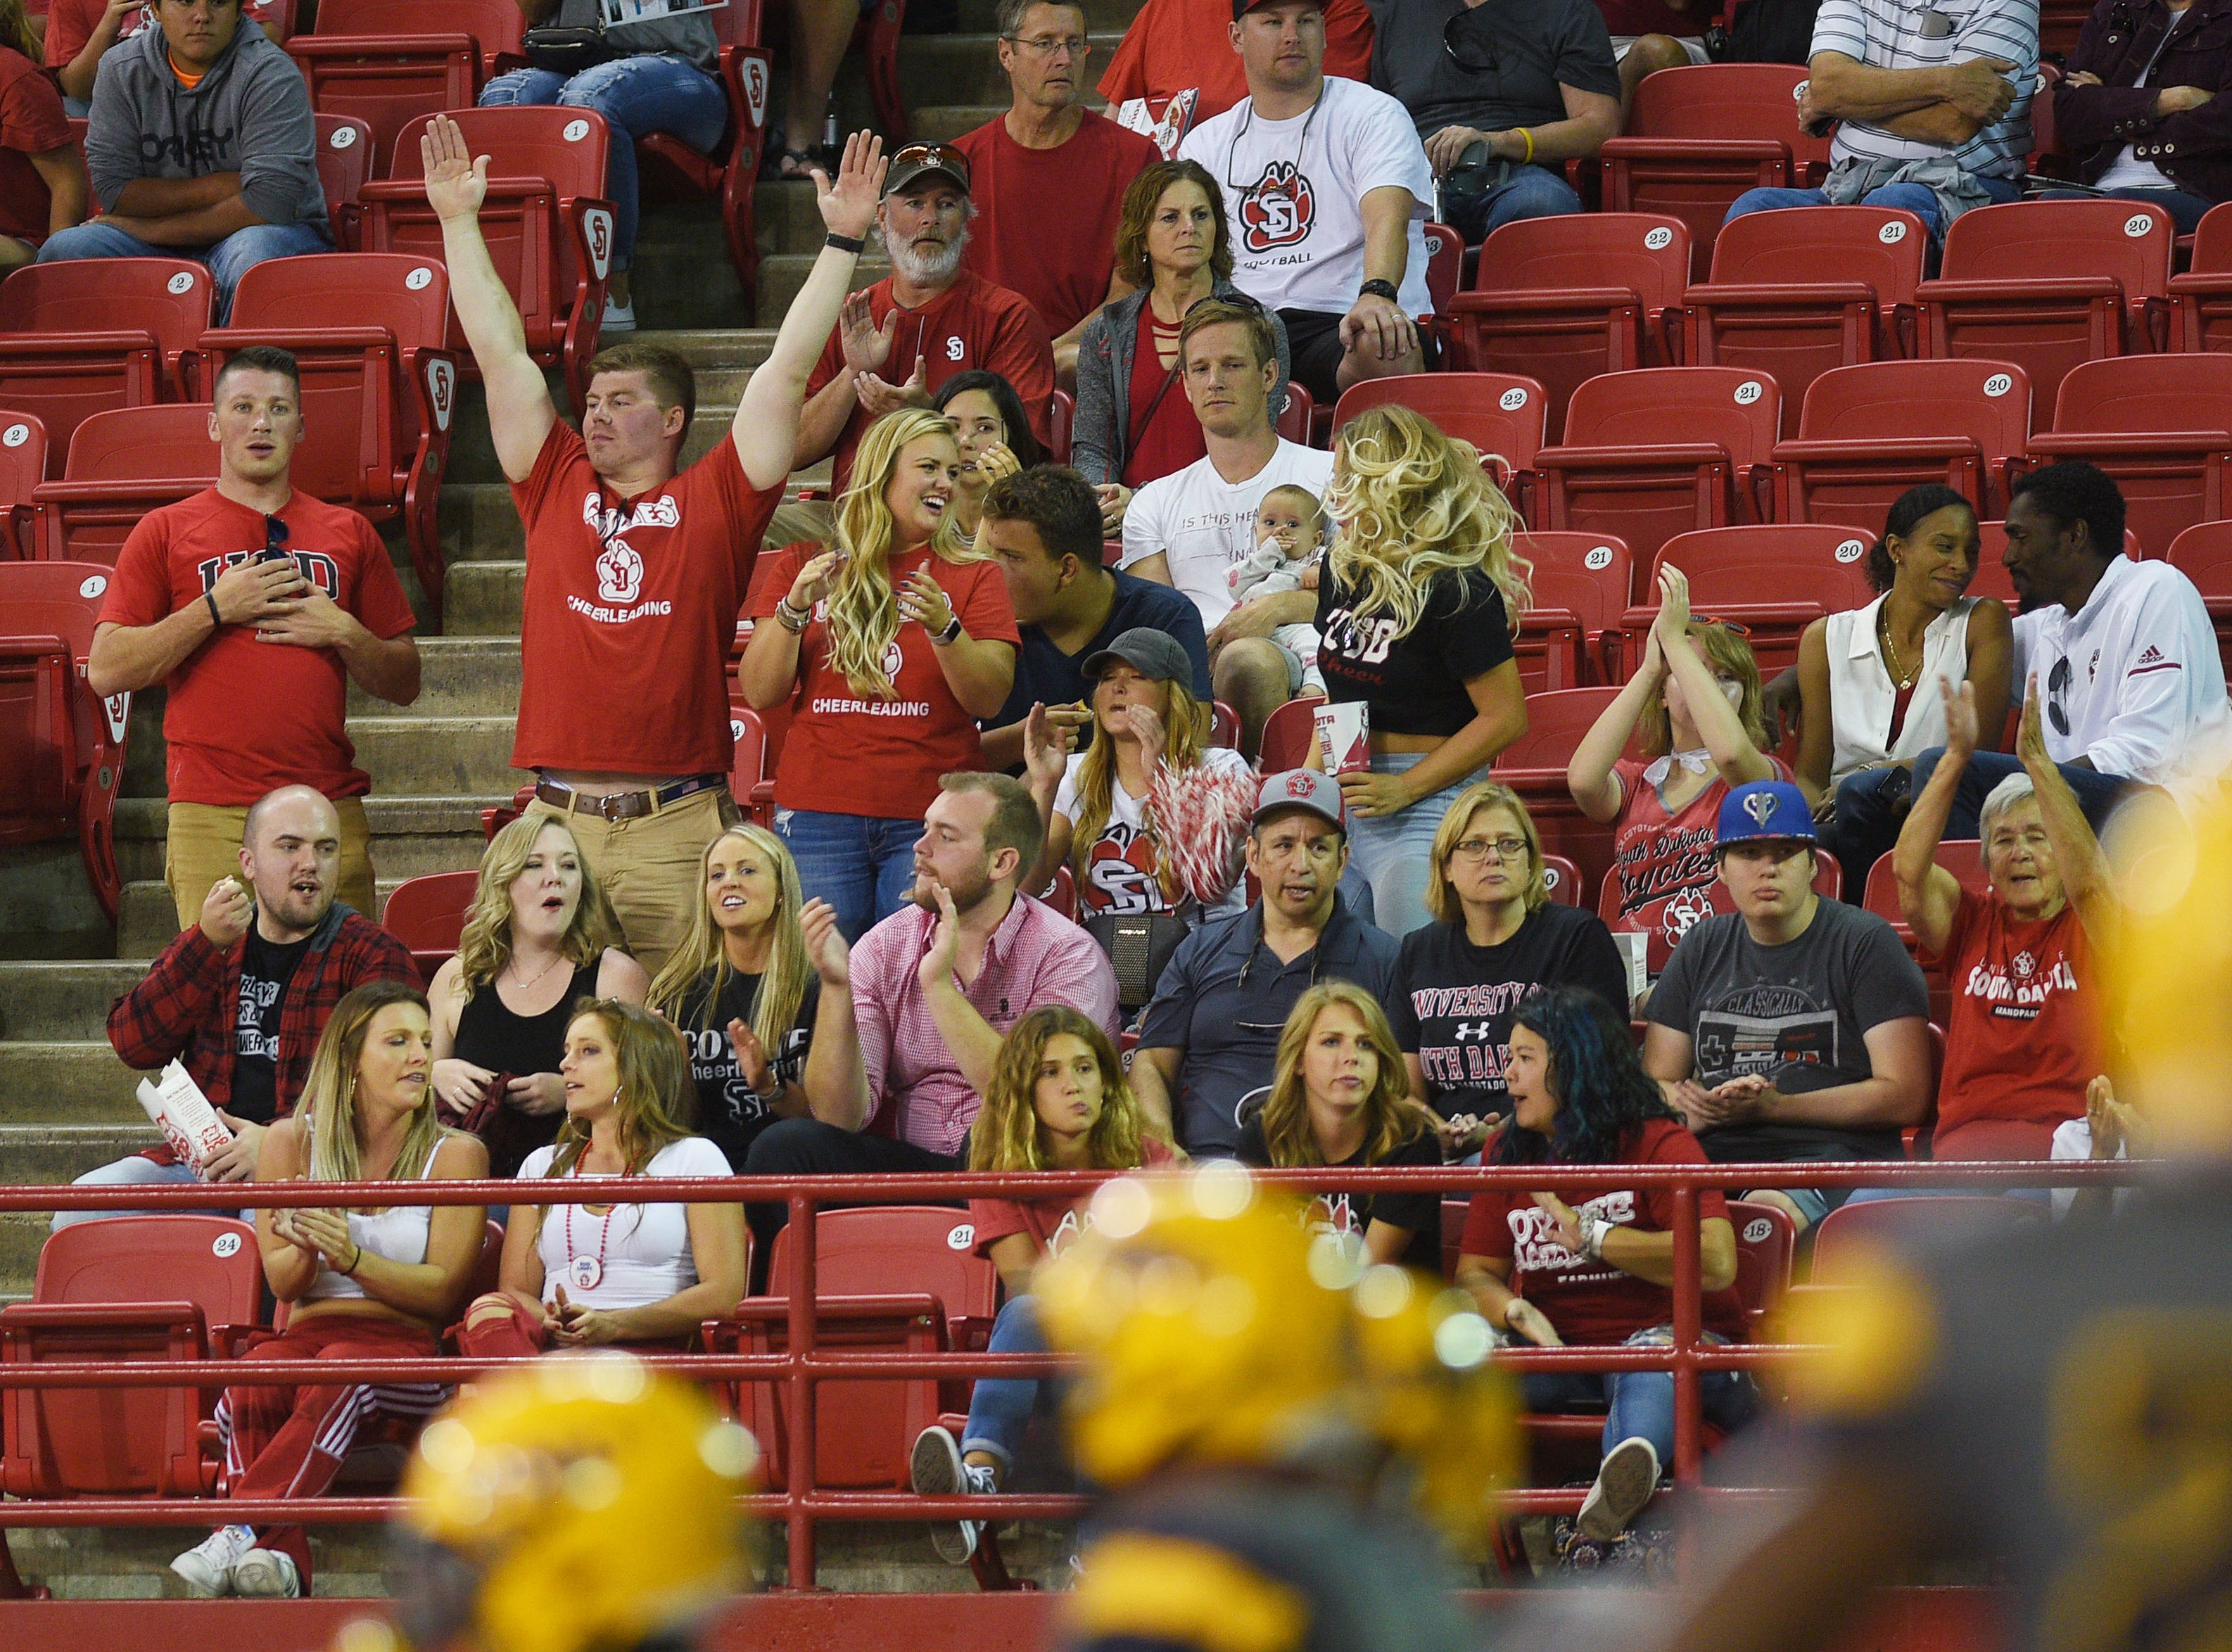 USD fans cheer after a touchdown against Northern Colorado Saturday, Sept 8, at the DakotaDome in Vermillion.